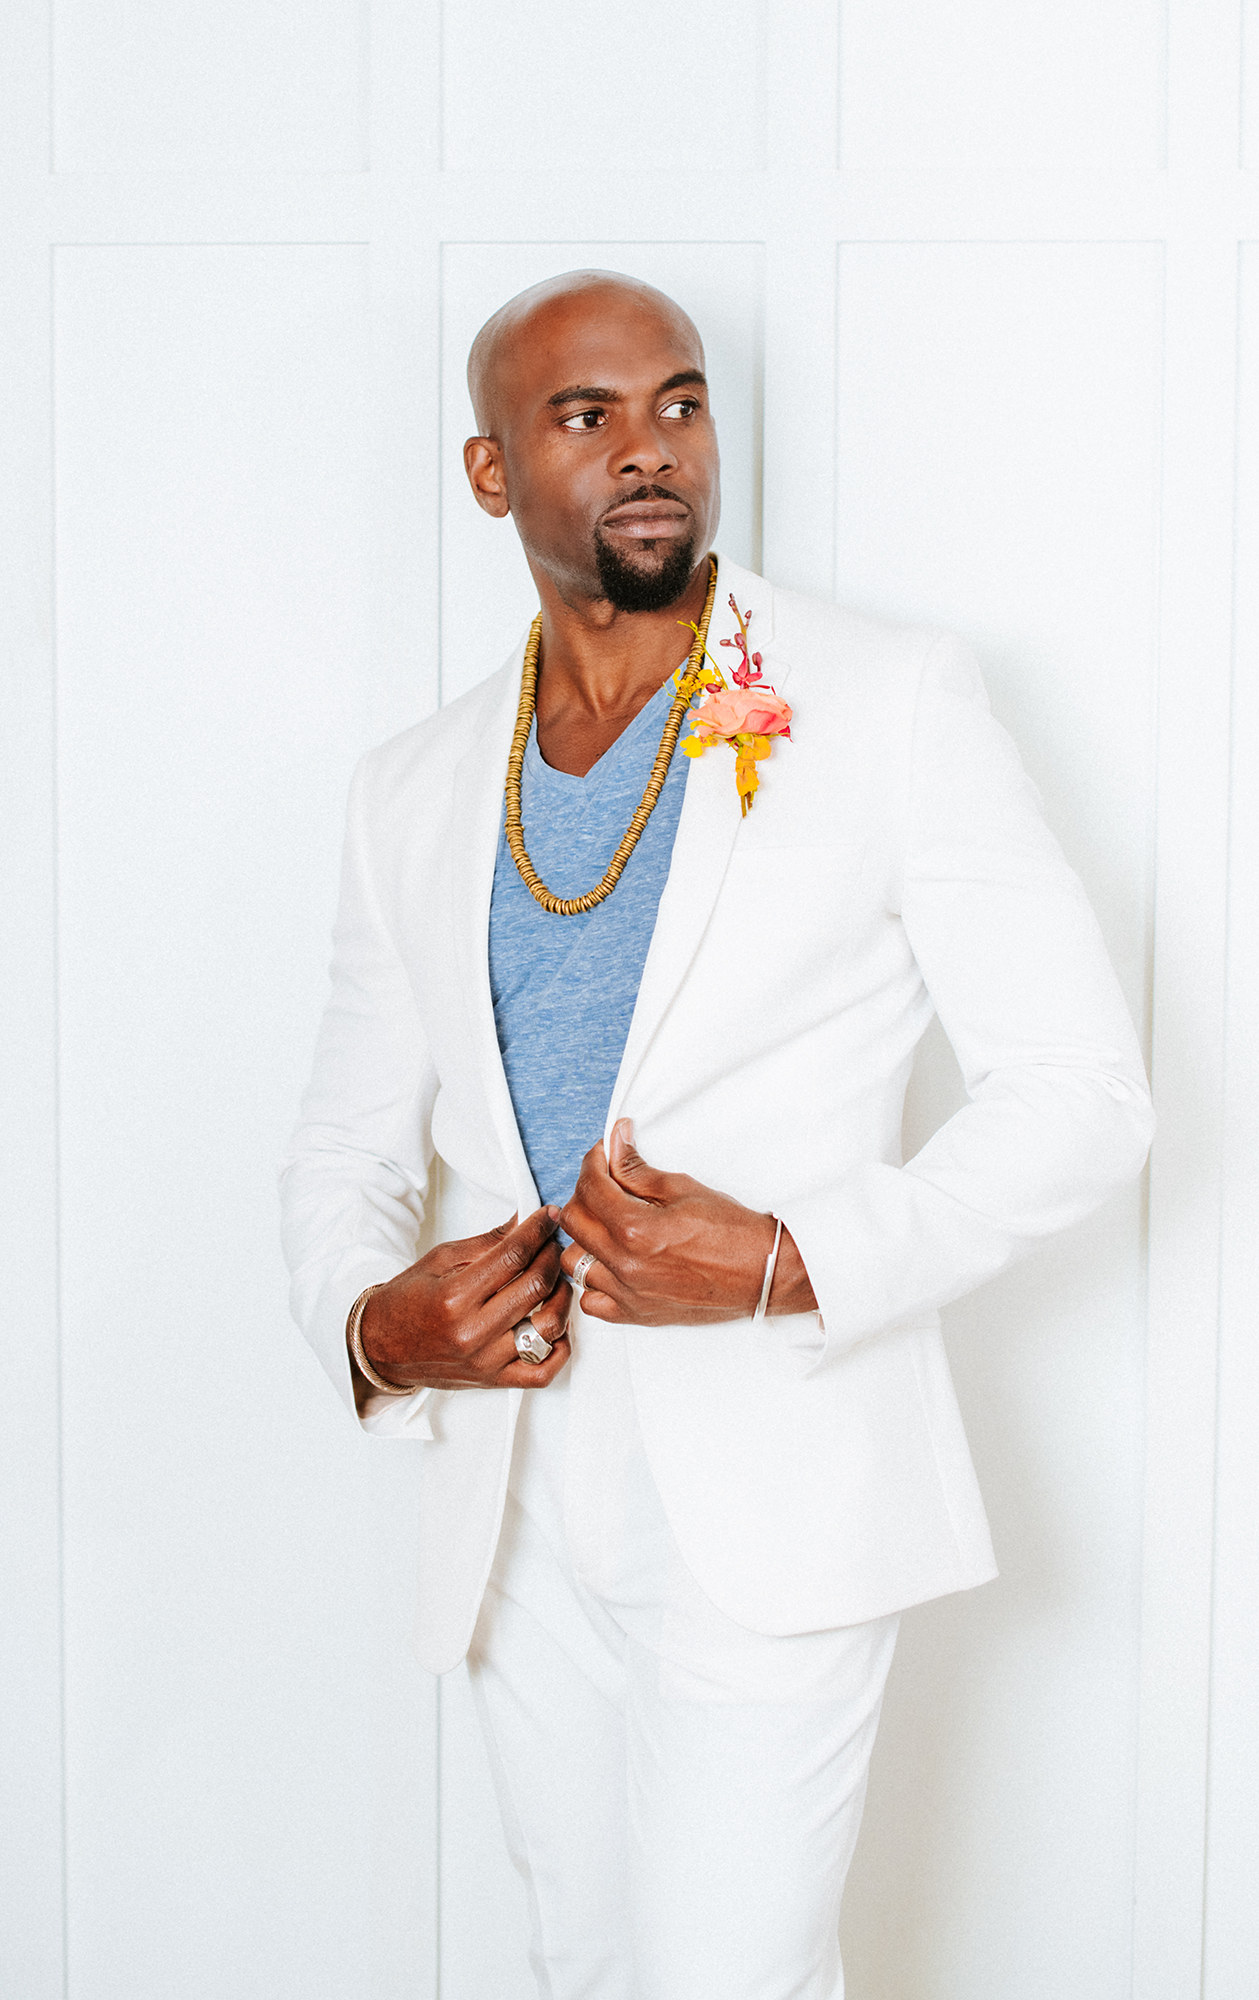 Black groom in white suit with bright boutonniere